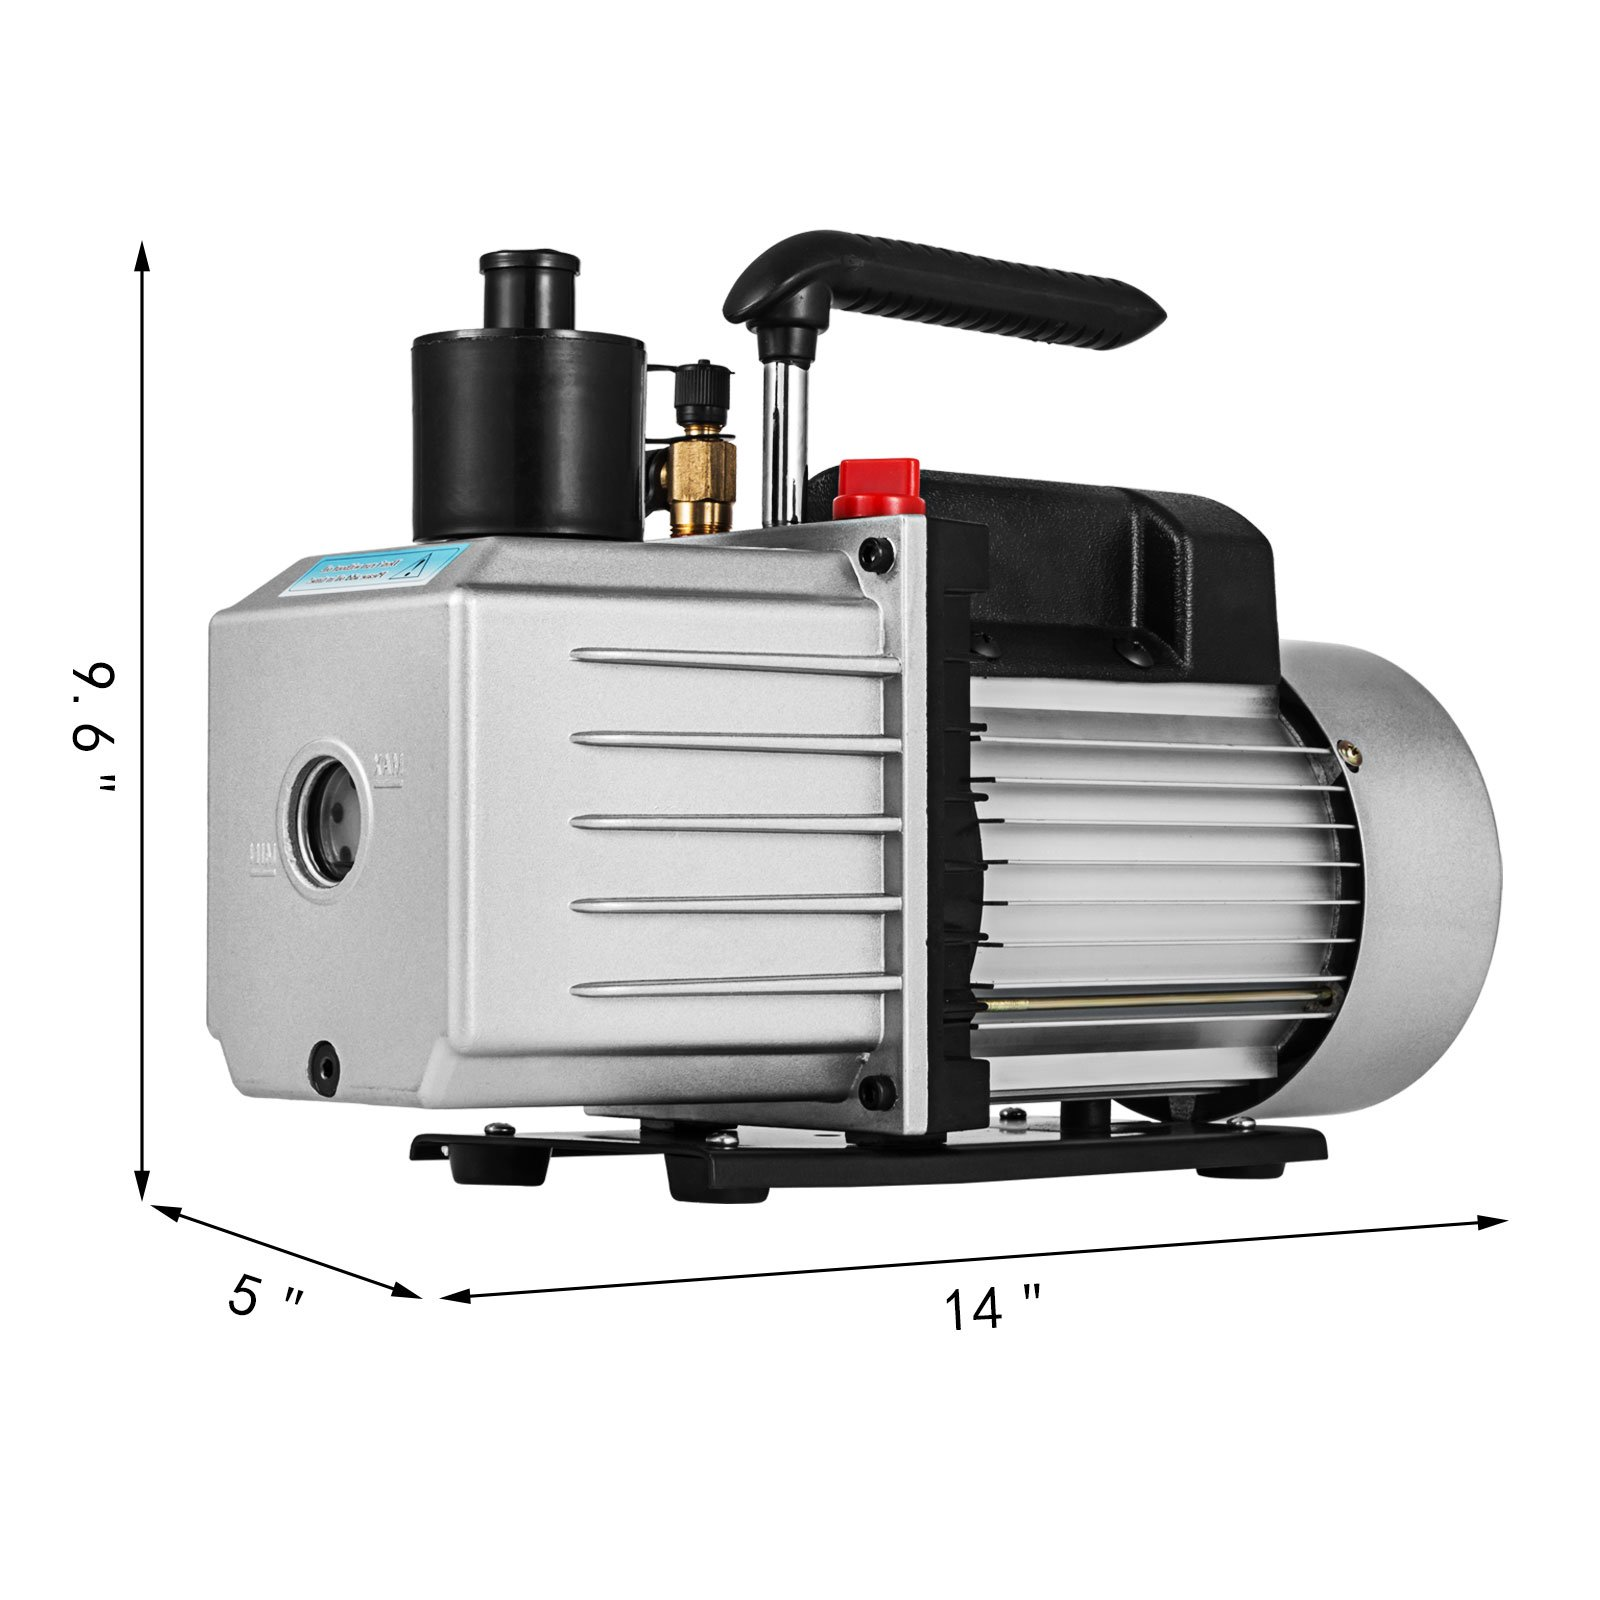 VEVOR Vacuum Pump 8CFM 1HP Two Stage HVAC Rotary Vane Vacuum Pump Wine Degassing Milking Medical Food Processing Air Conditioning Auto AC Refrigerant Vacuum Pump (2-Stage, 8CFM) by VEVOR (Image #3)